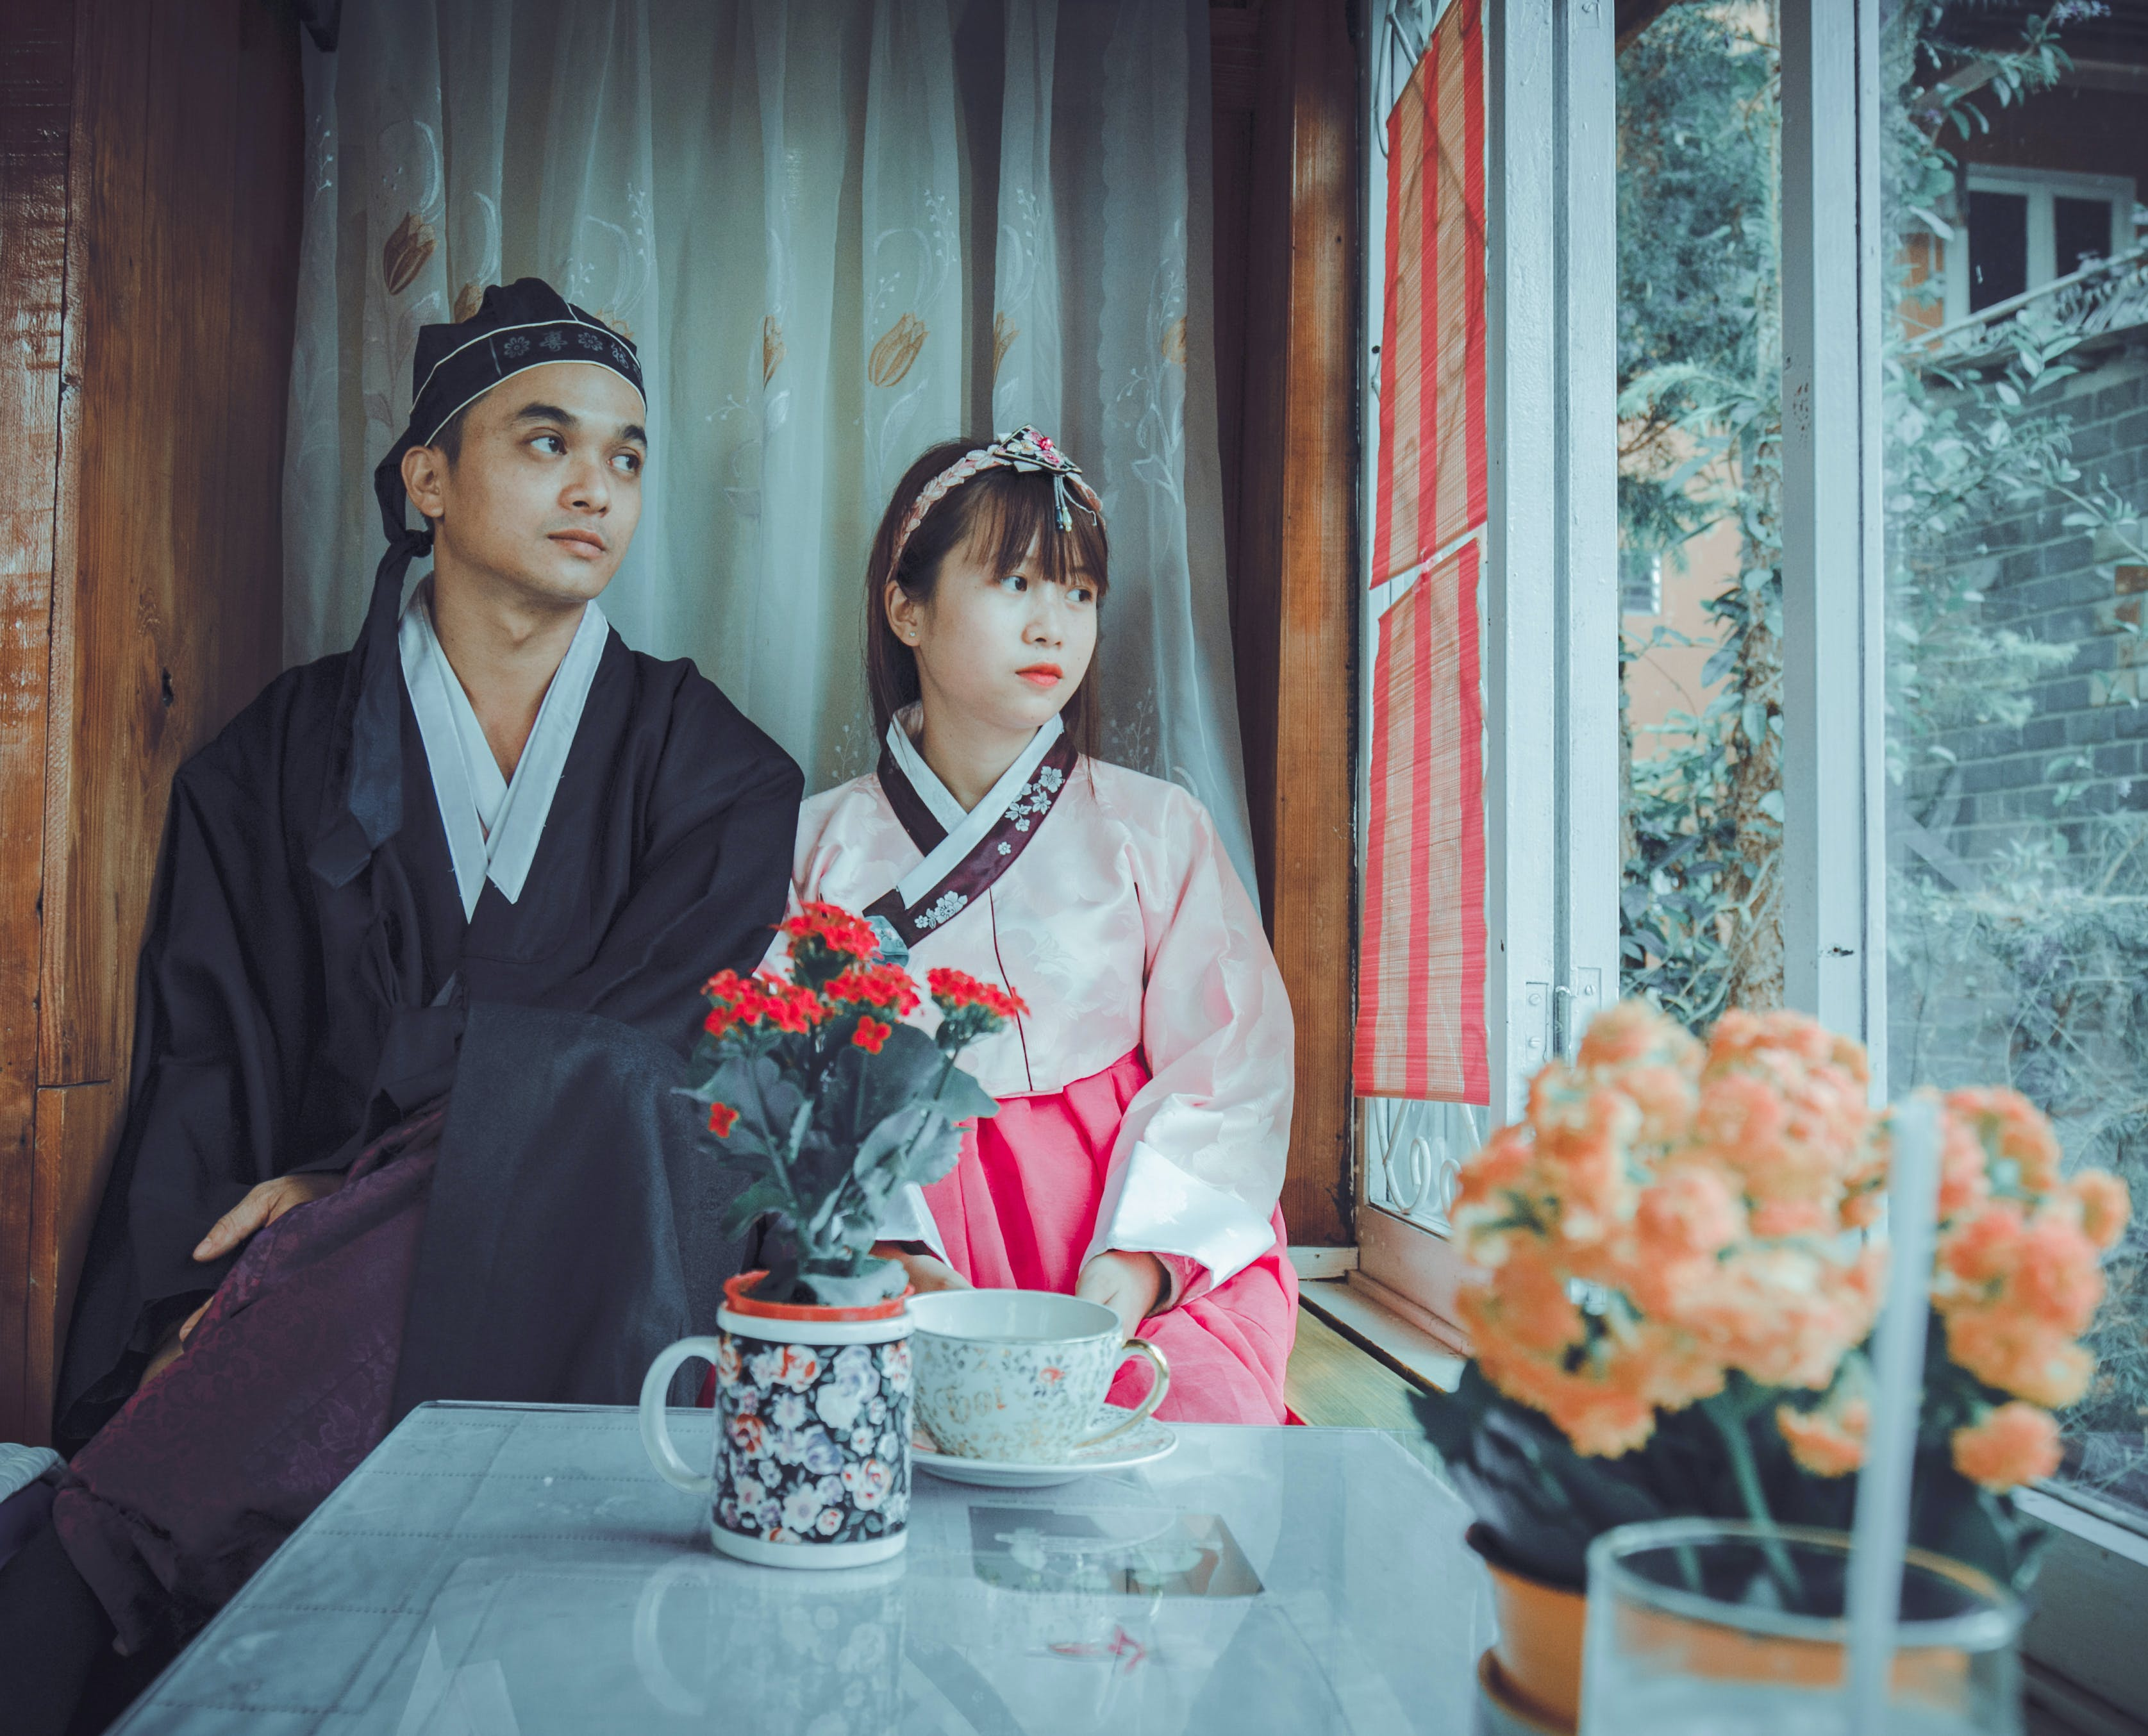 Couple Wearing Korean Traditional Dress Near Windowpane Staring at the Window